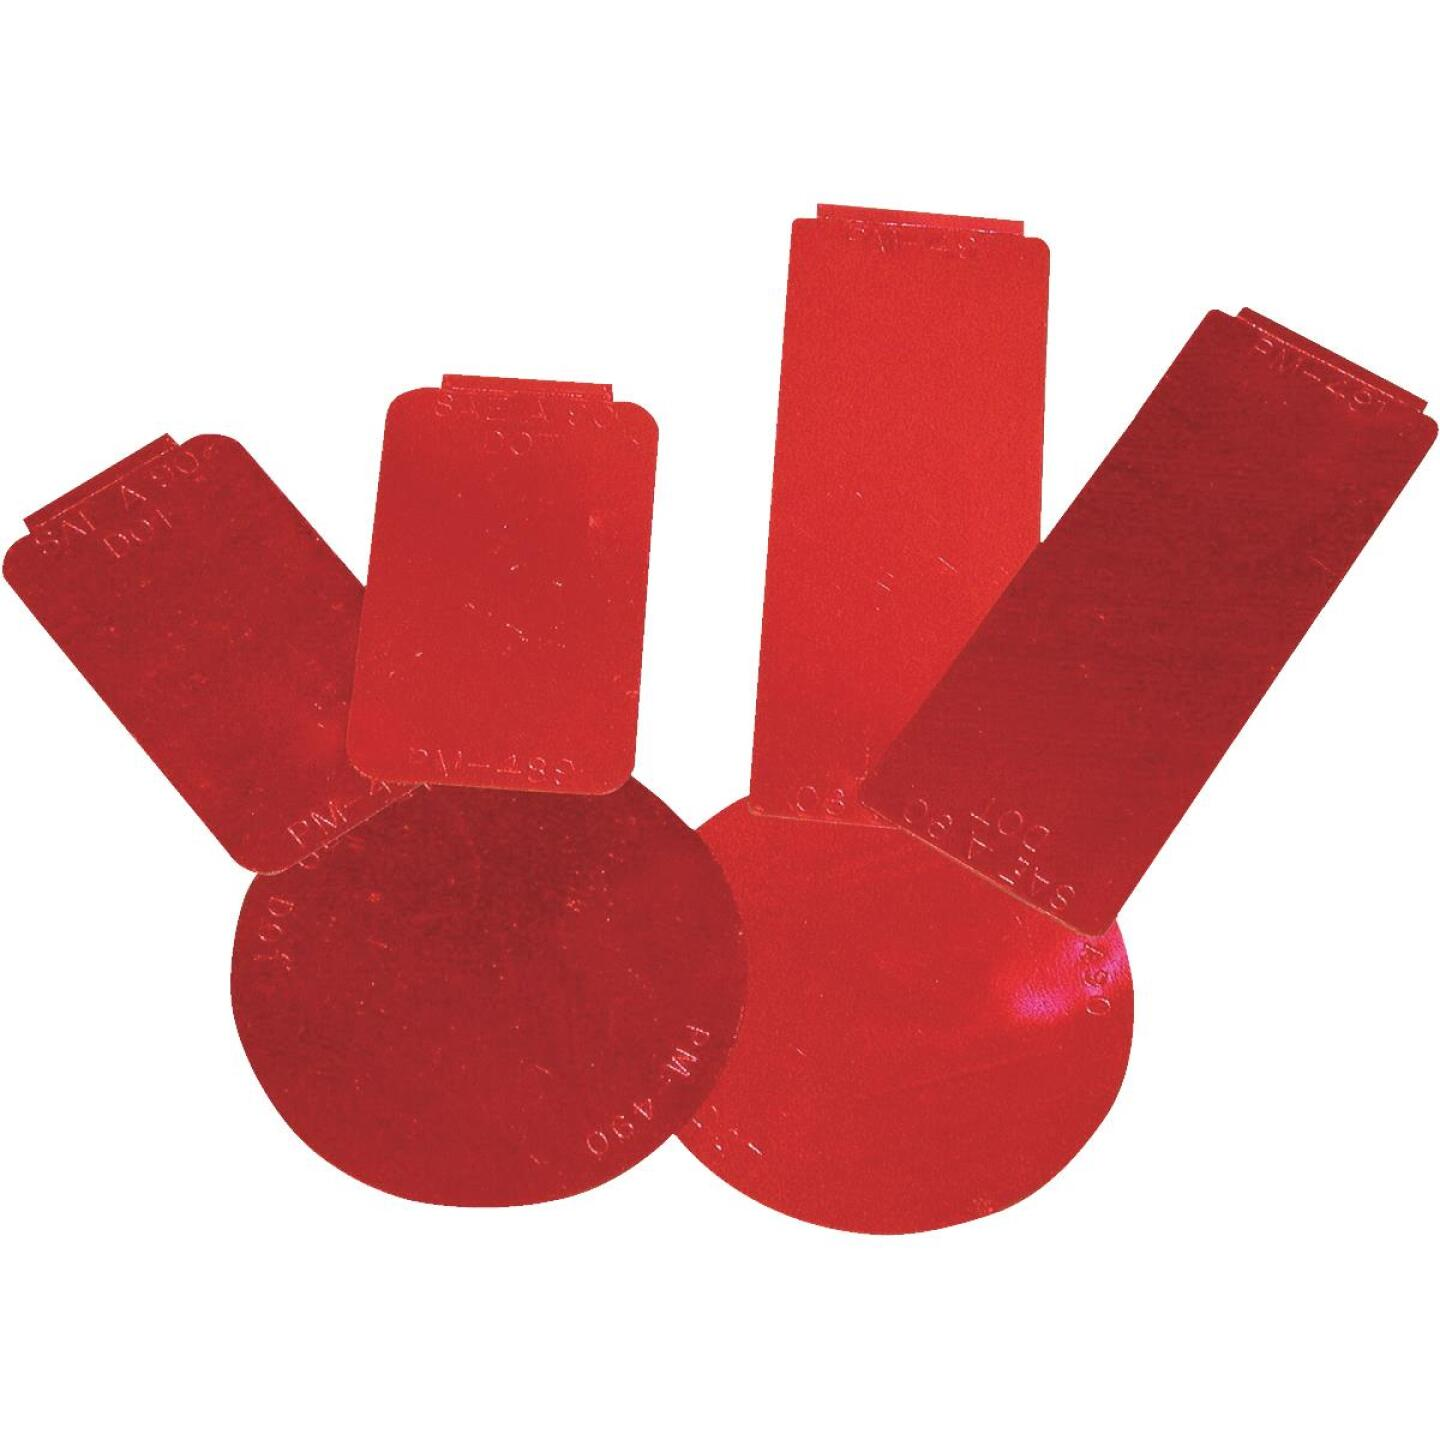 Peterson Red Wide Angle Reflector Kit Image 1